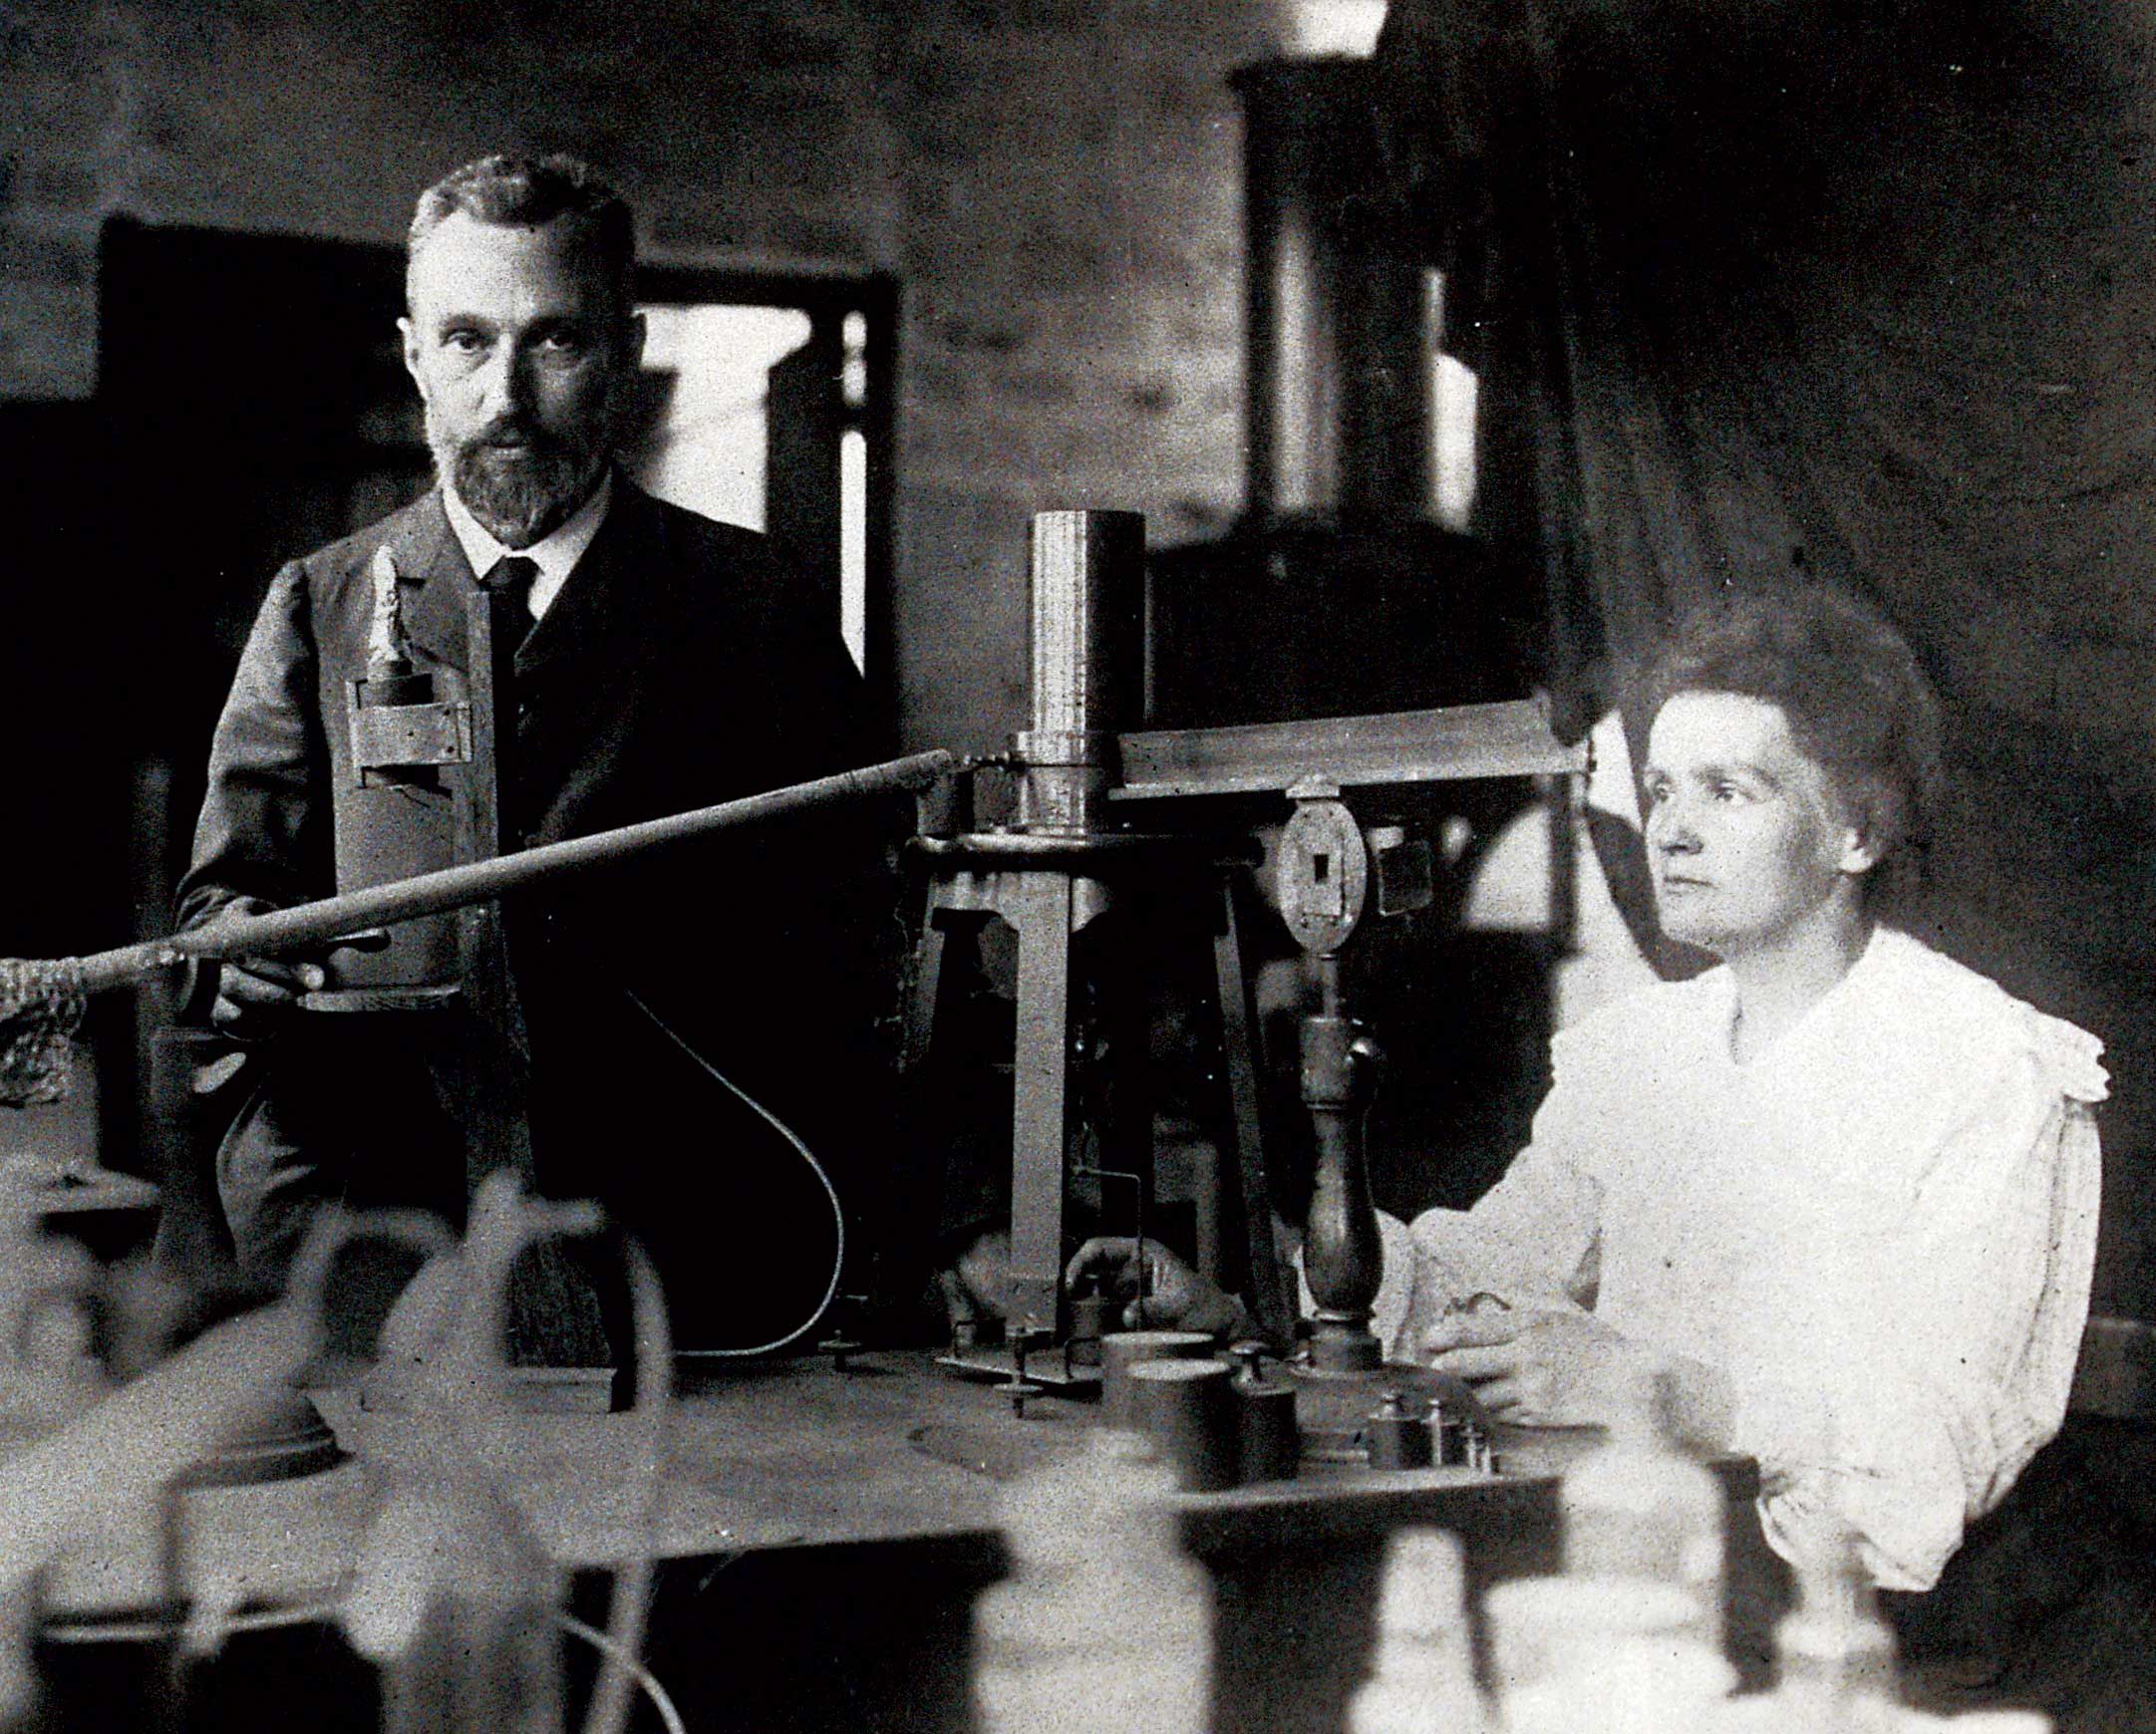 Pierre and Marie Curie in their lab